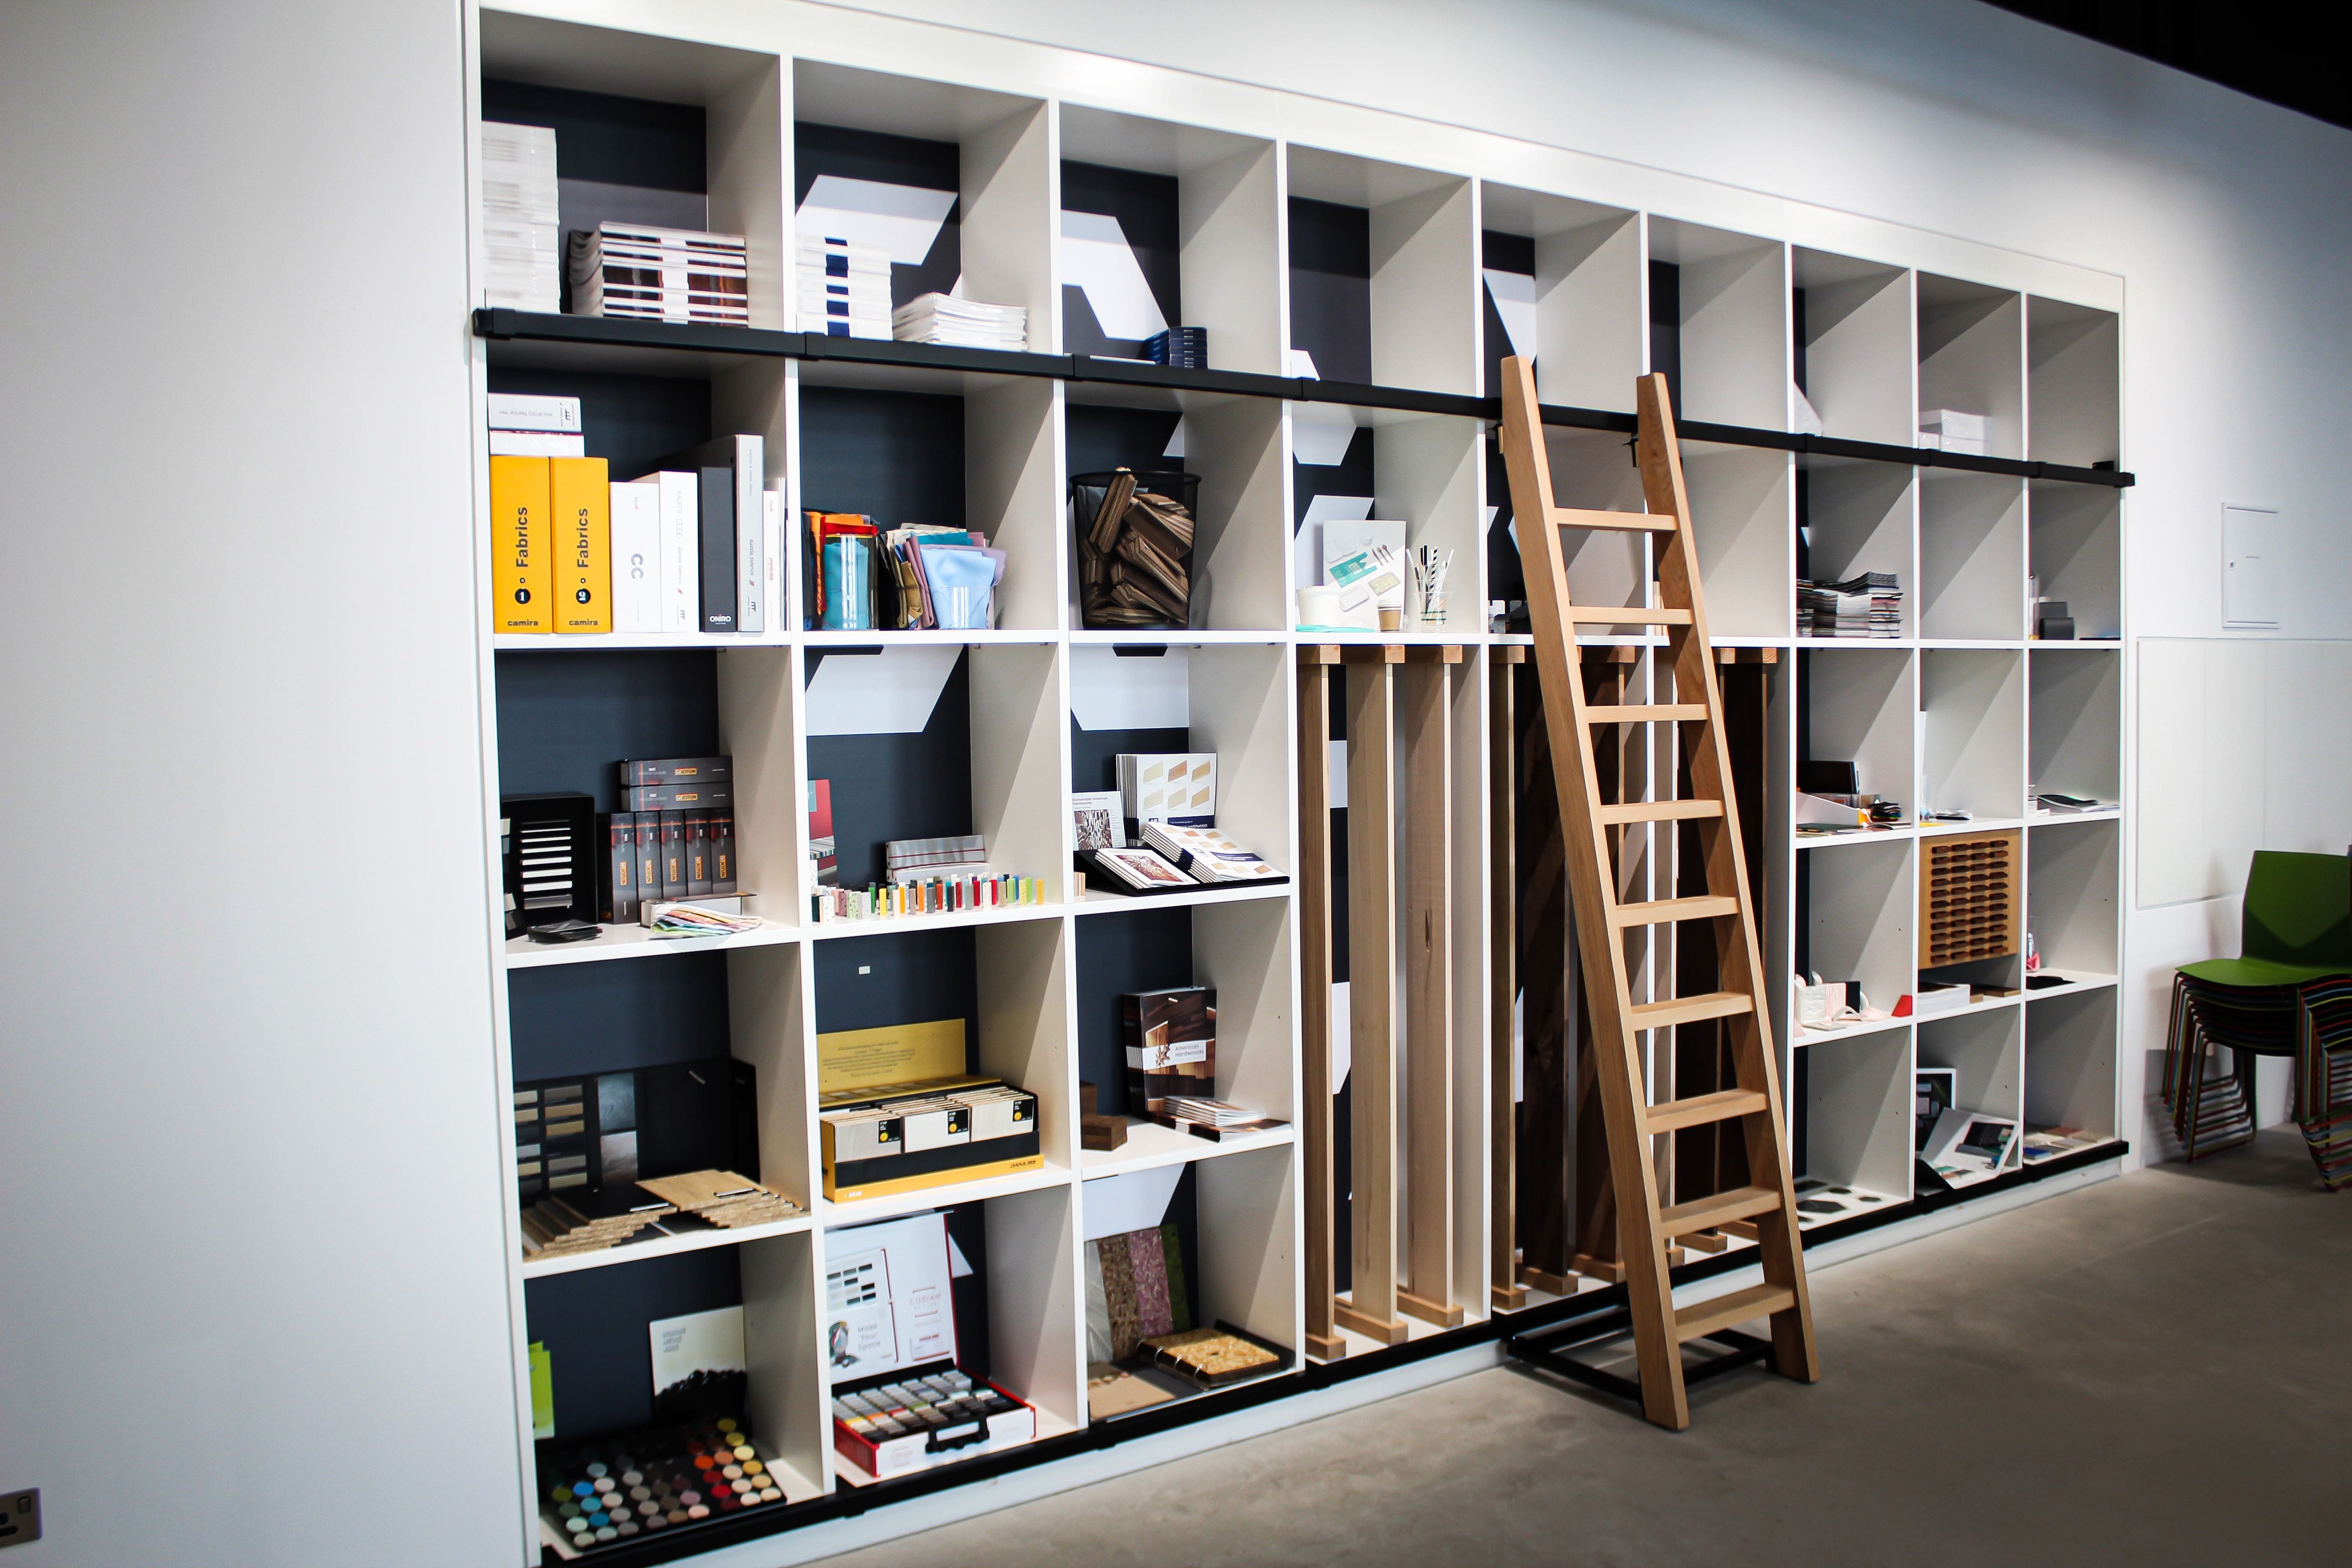 Uae S First Material Library Colab Opens In D3 Design